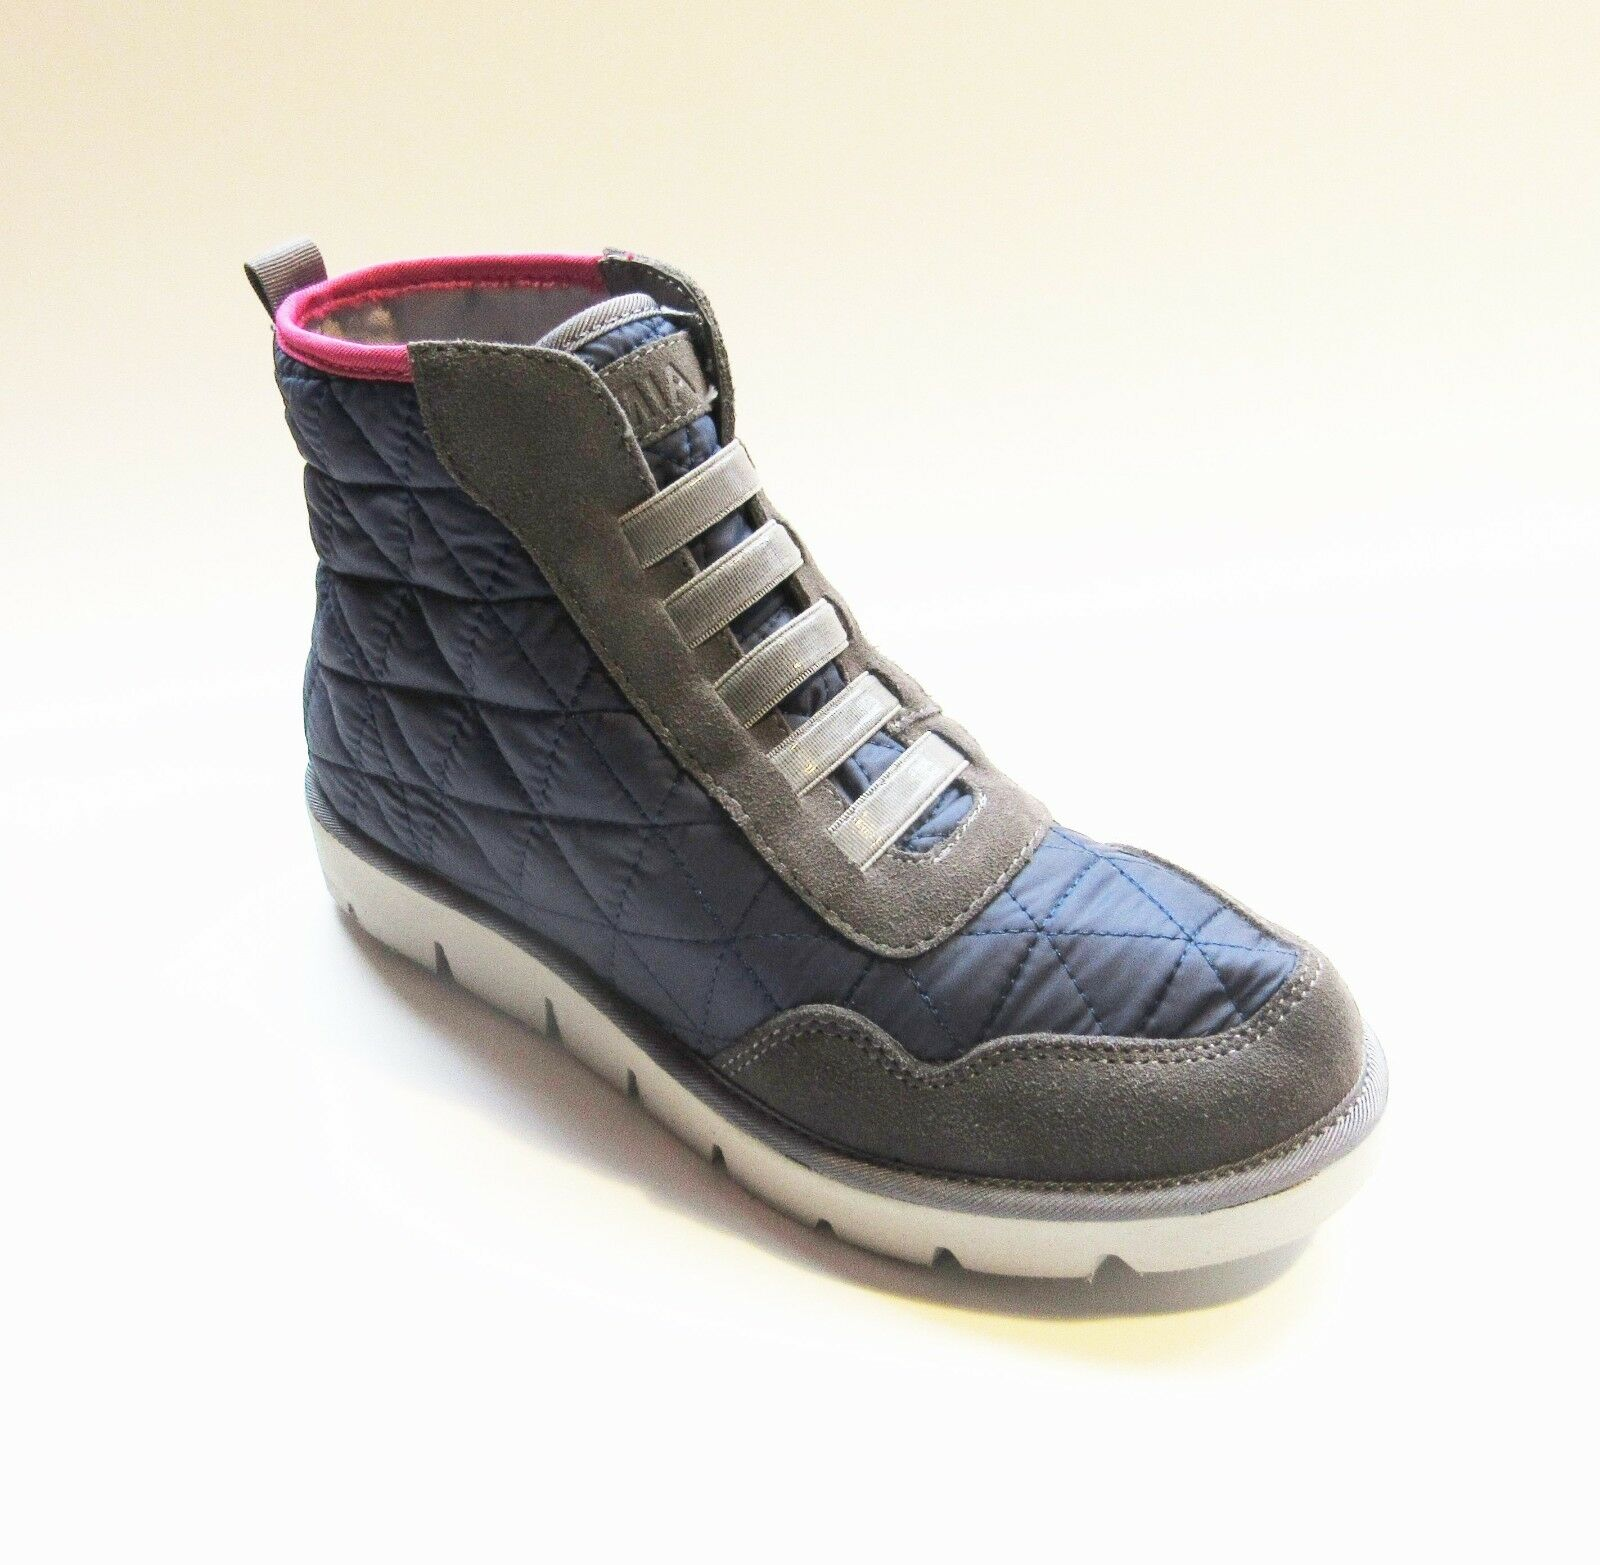 MIA High-top Quilted Blue Gray & Pink Sz Trainers Sneakers Sz Pink 6, 6.5, 7, 7.5 NWOB d1e46e